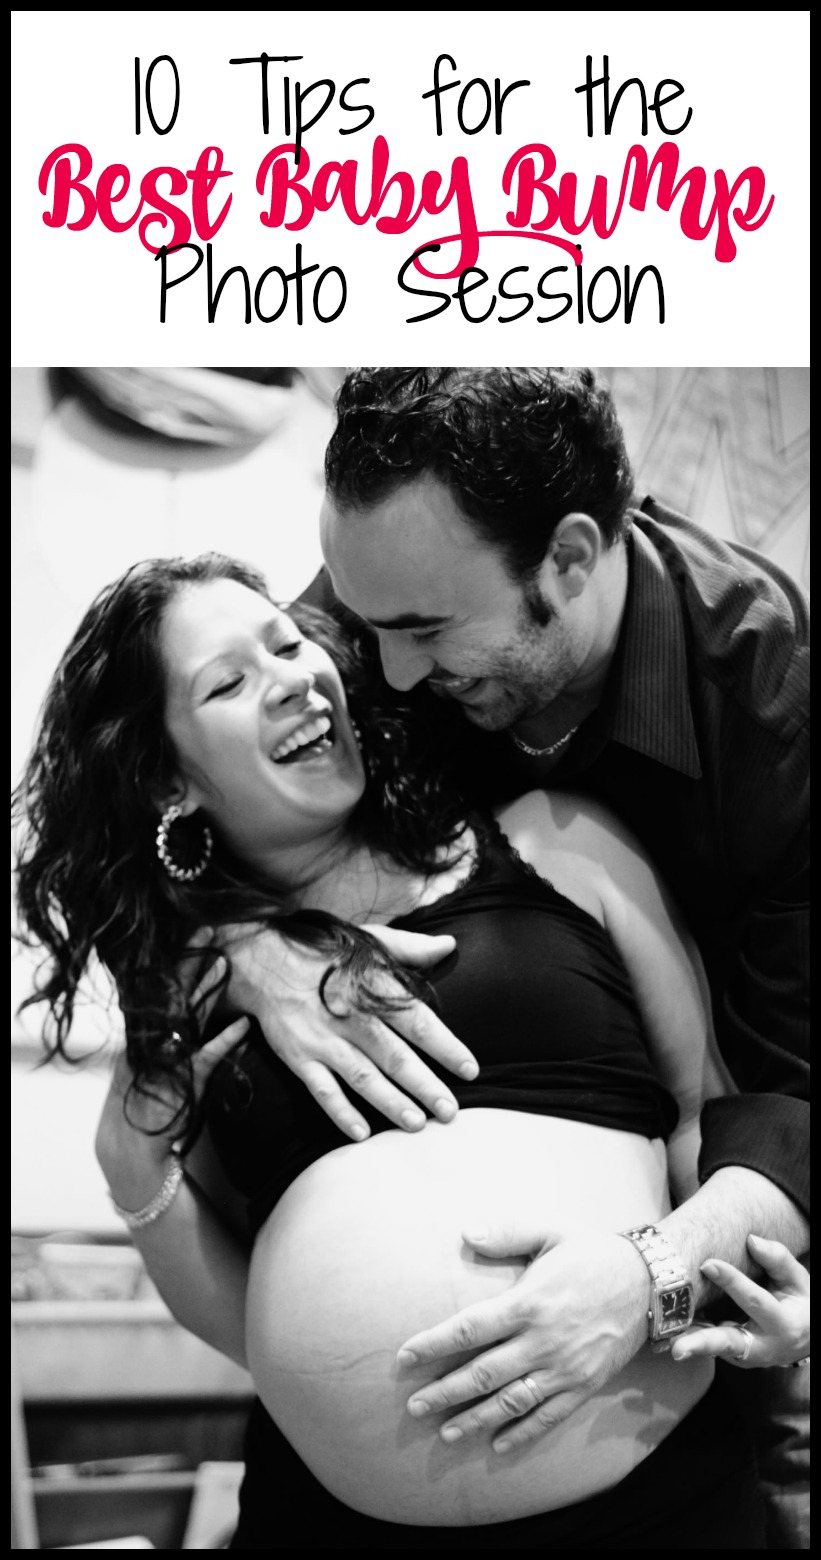 10 Tips for the Best Baby Bump Photo Session